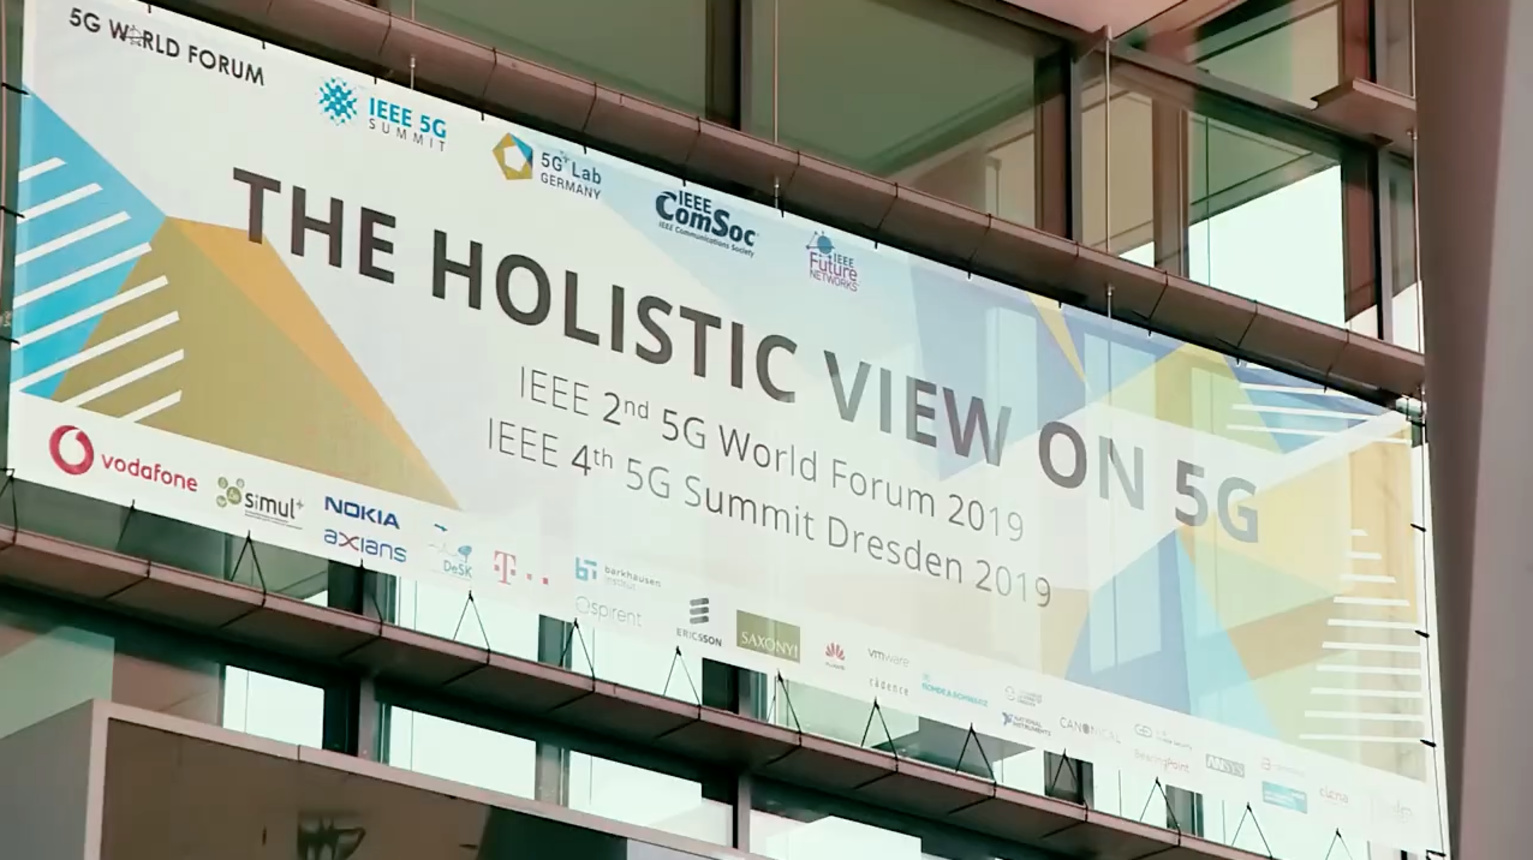 Sights and Sounds of the 2019 IEEE 5G World Forum